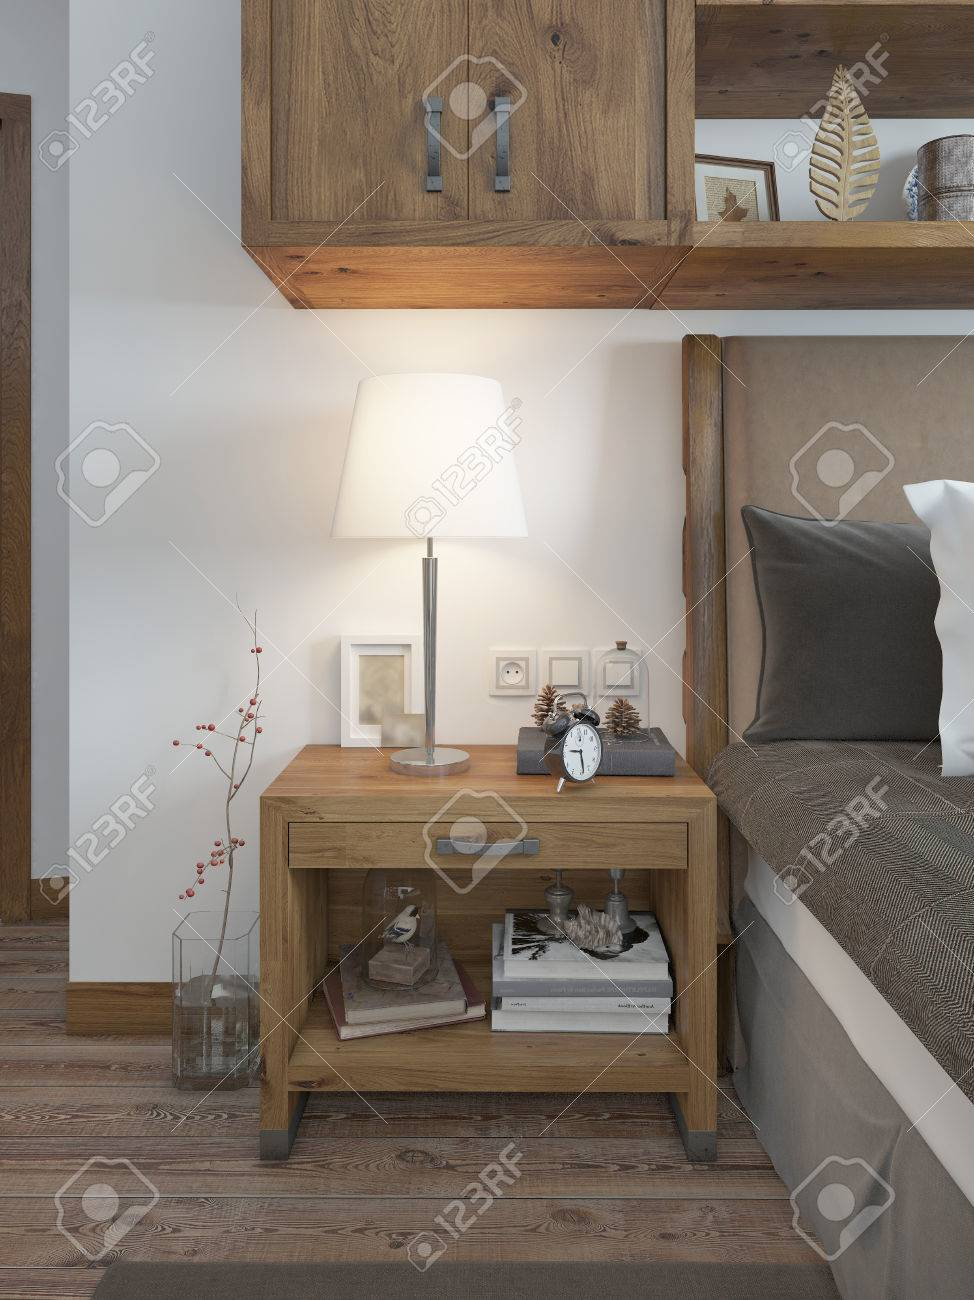 Wooden bedside table with a niche for the decor bedside table stock photo wooden bedside table with a niche for the decor bedside table with lamp and books beside the bed a bed in a rustic style 3d render mozeypictures